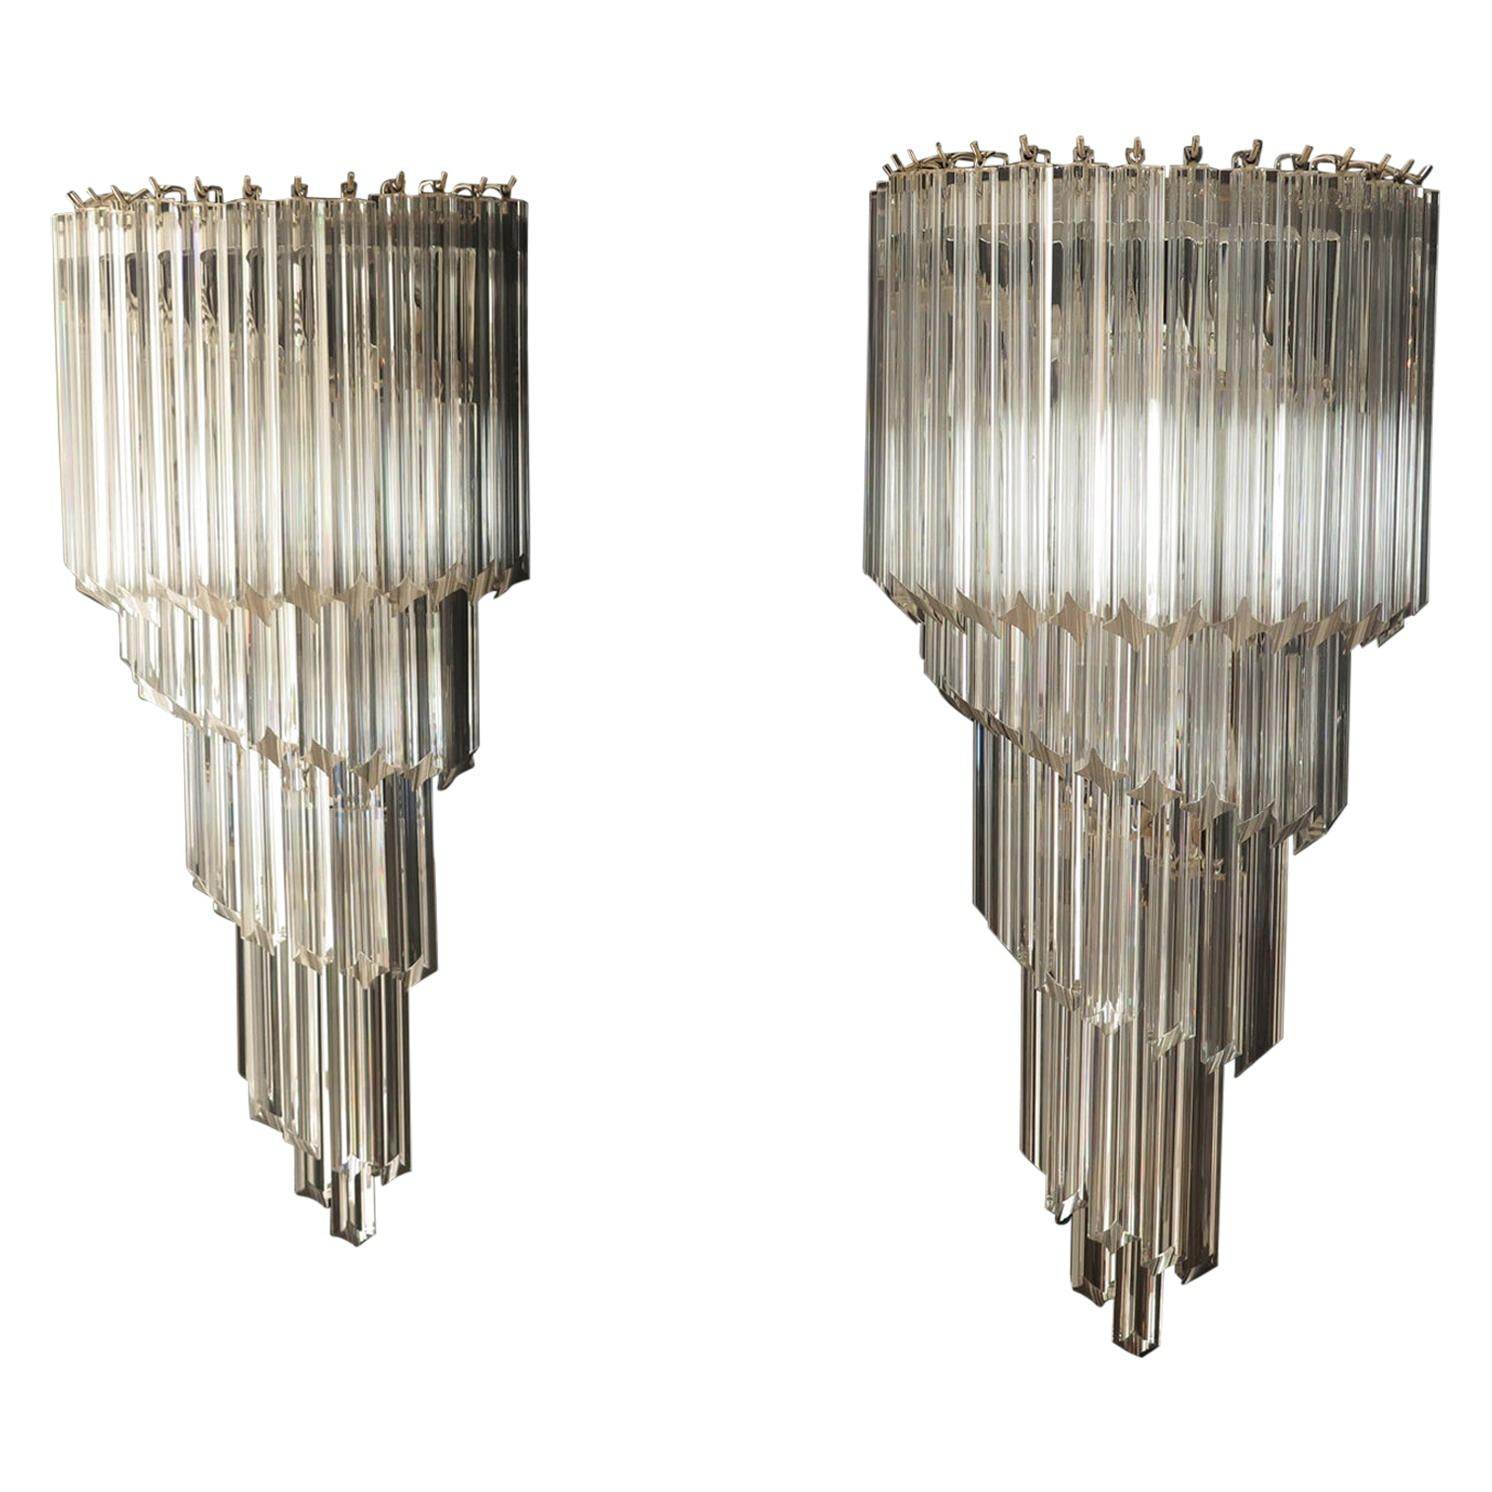 Monumental Pair of Vintage Murano Wall Sconce, 41 Transparent Quadriedri, Elena